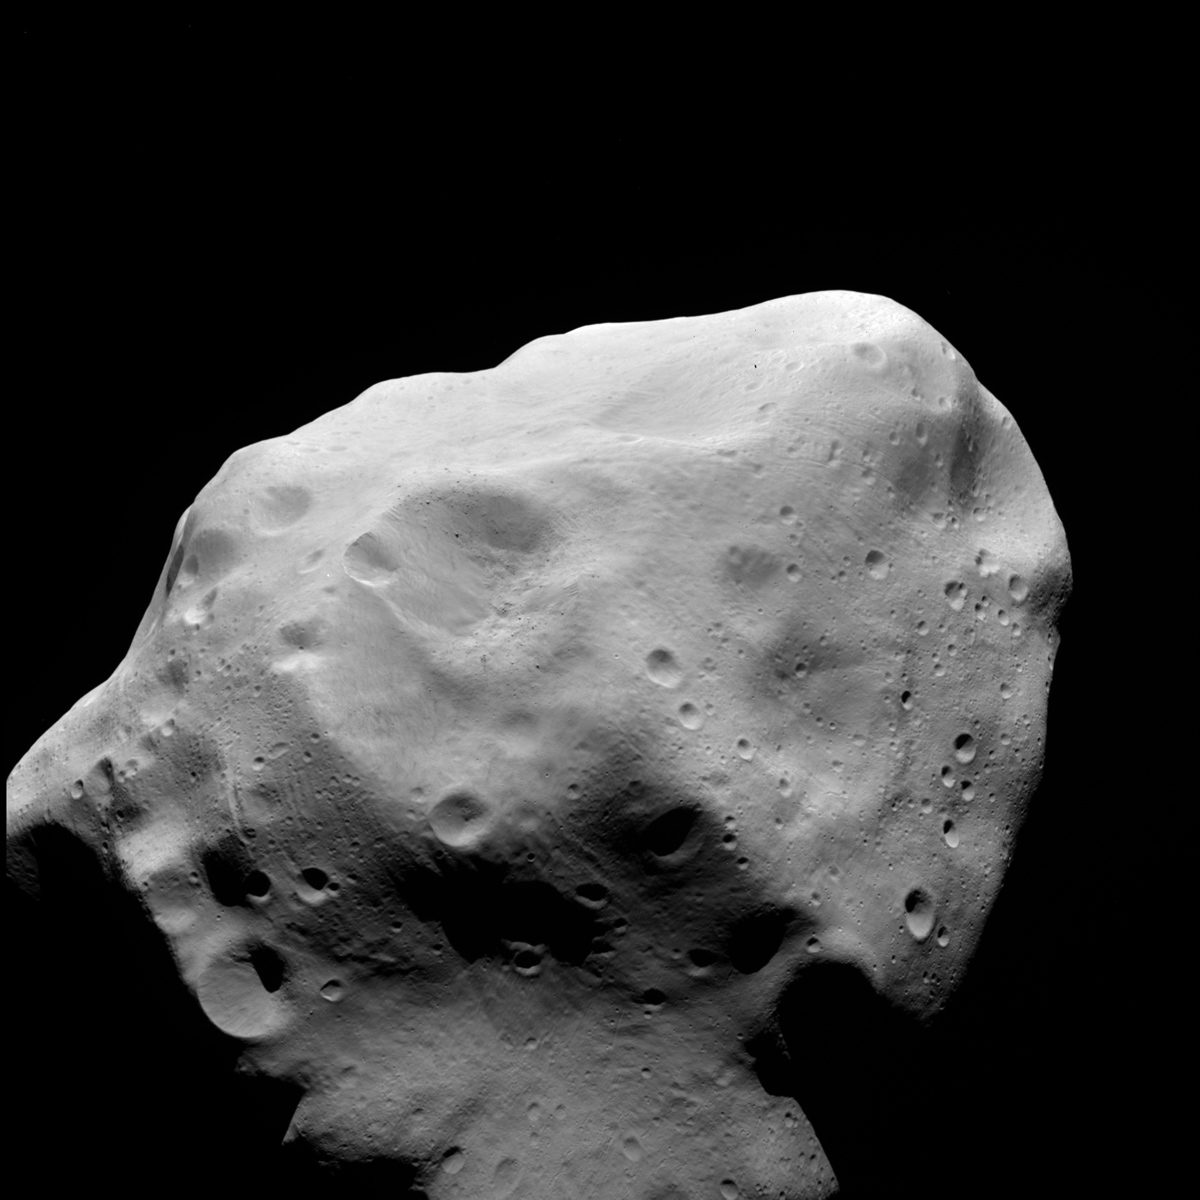 Asteroid Lutetia May Have Heart of Hot Melted Metal